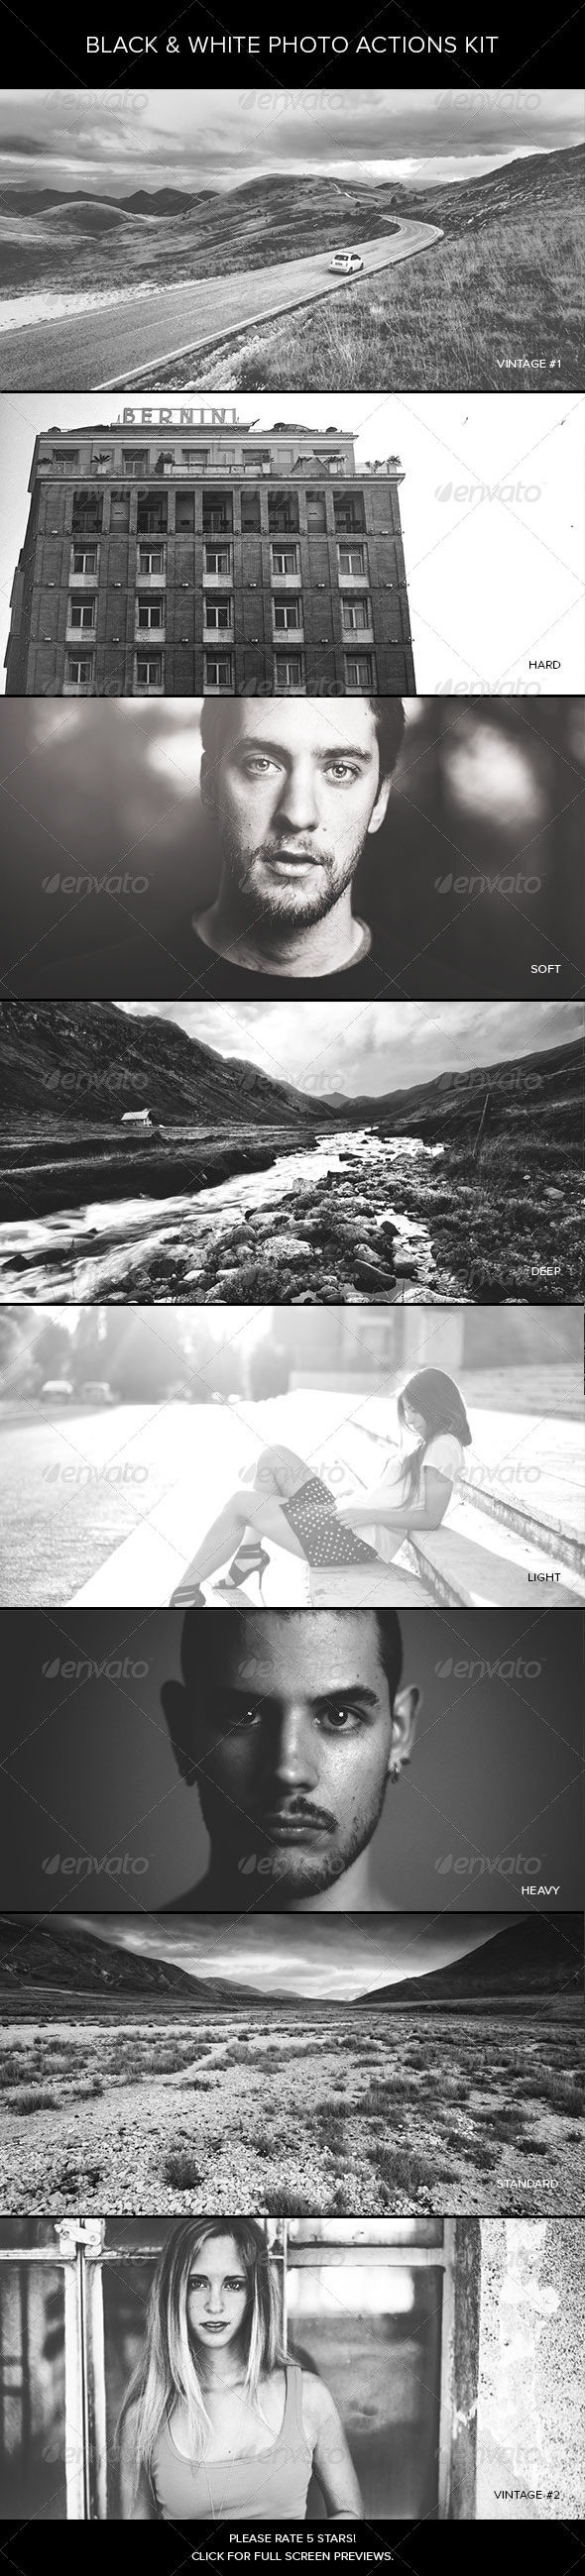 Black & White Photo Actions Kit - Photo Effects Actions